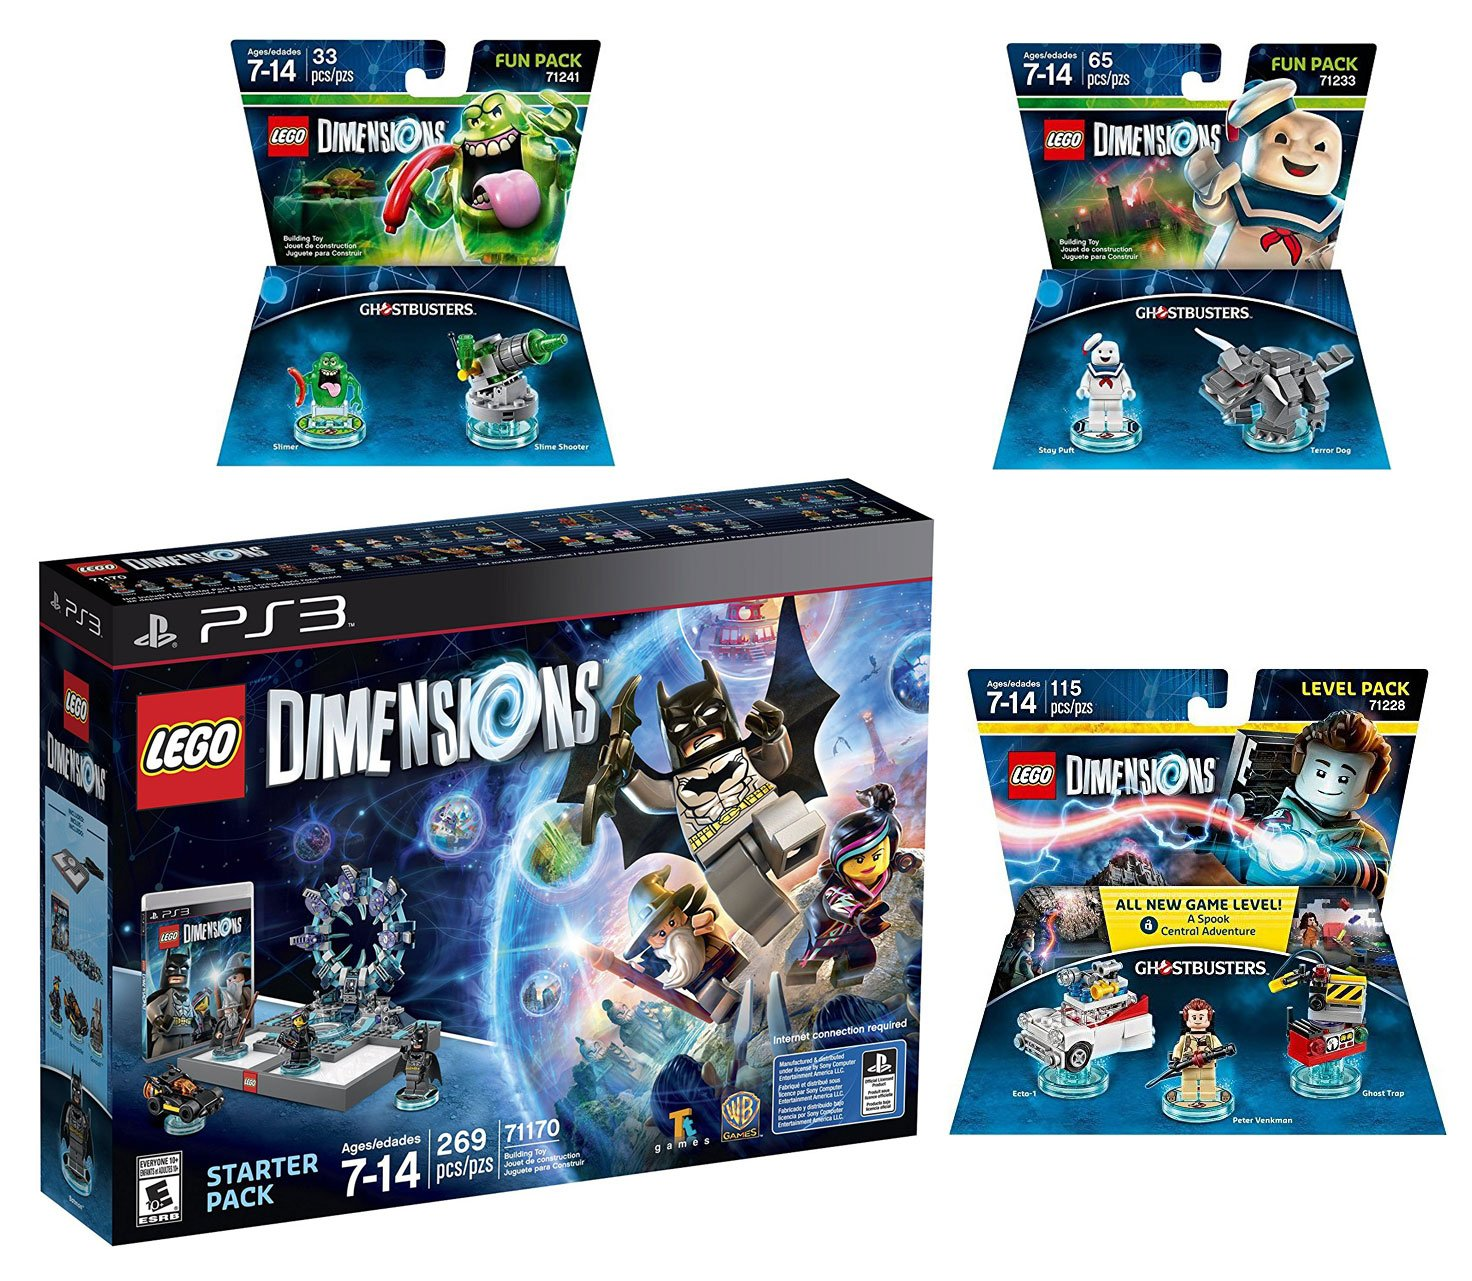 Lego Dimensions Ghostbusters Starter Pack + Peter Venkman Level Pack + Slimer + Stay Puft Fun Packs for Playstation 3 or PS3 Pro Console